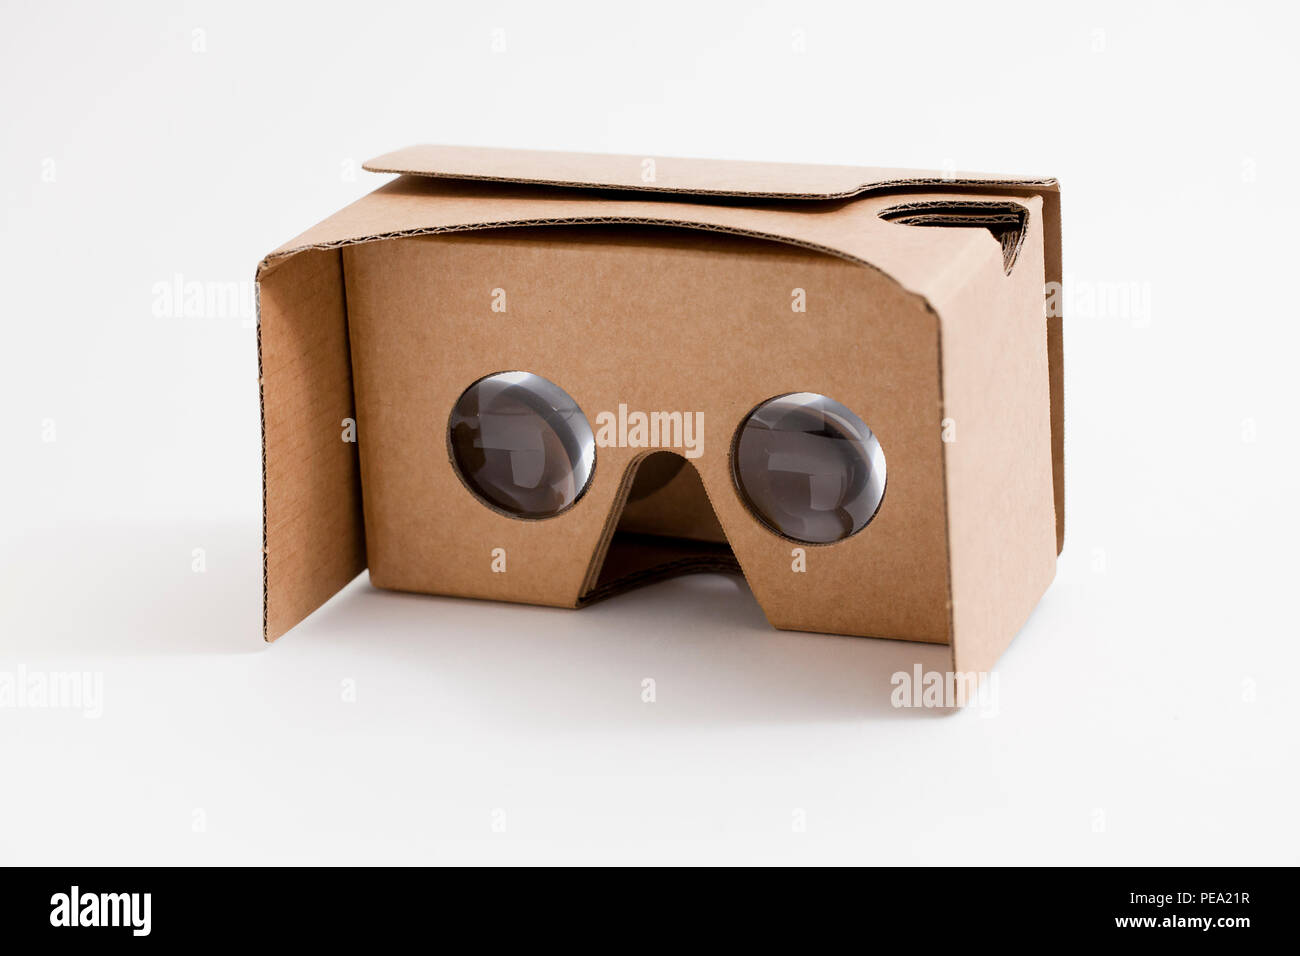 59415c2911d8 Google Cardboard Stock Photos   Google Cardboard Stock Images - Alamy